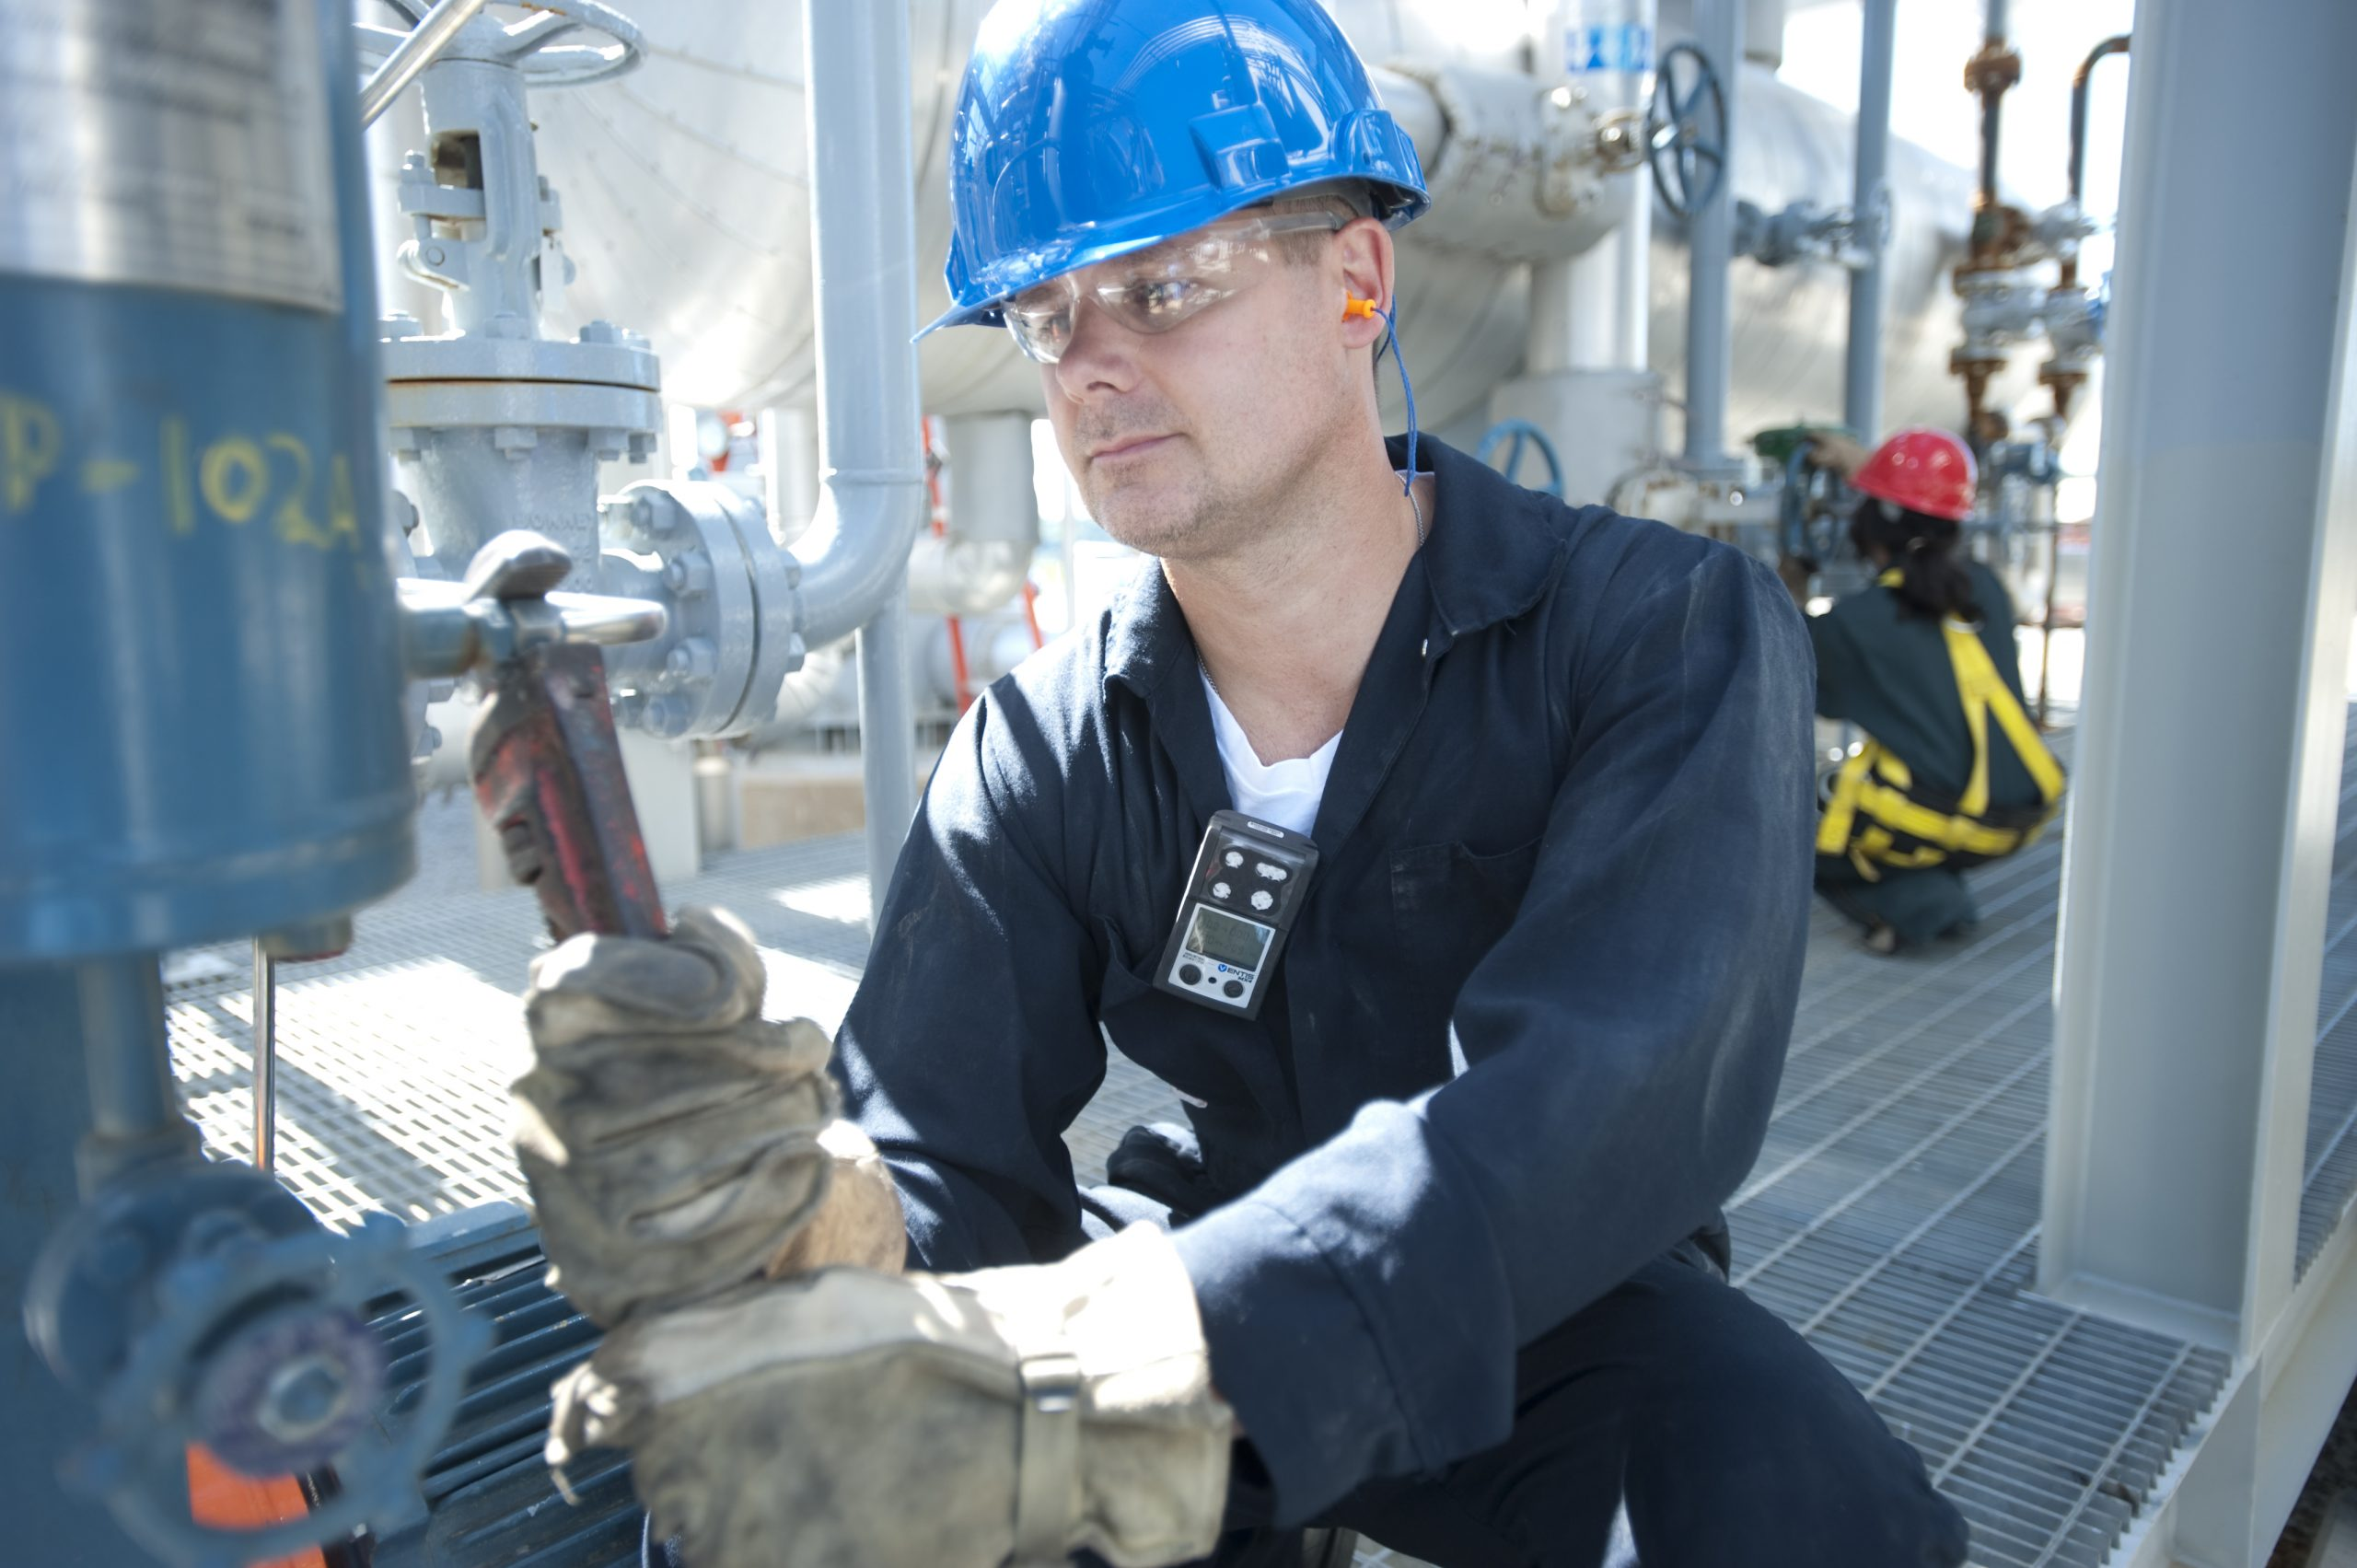 man wearing gas monitor and using a wrench to open a valve